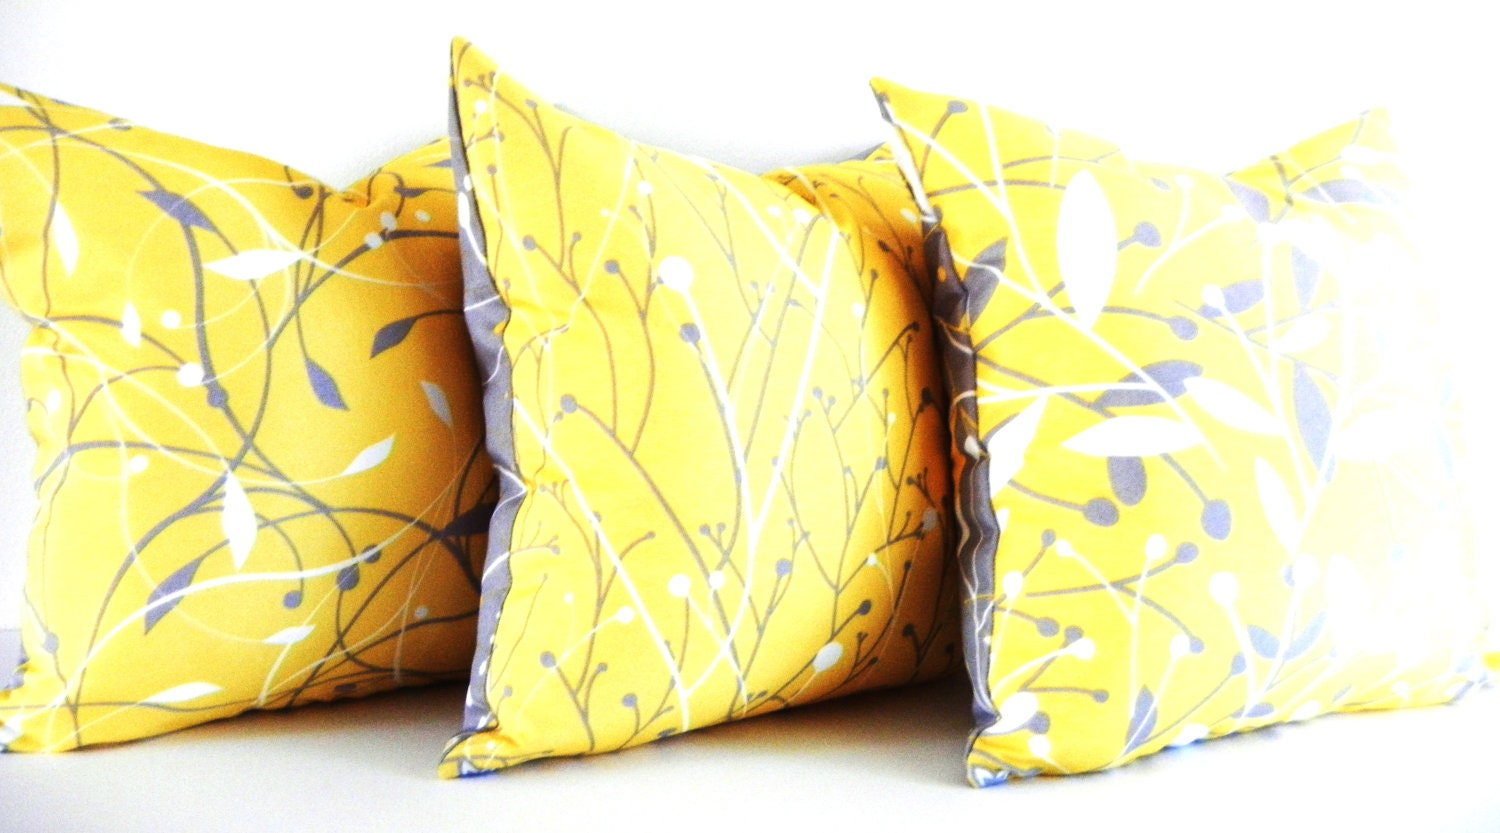 Throw Pillow Yellow : Yellow Pillows Gray Pillows Decorative Pillows by CityGirlsDecor